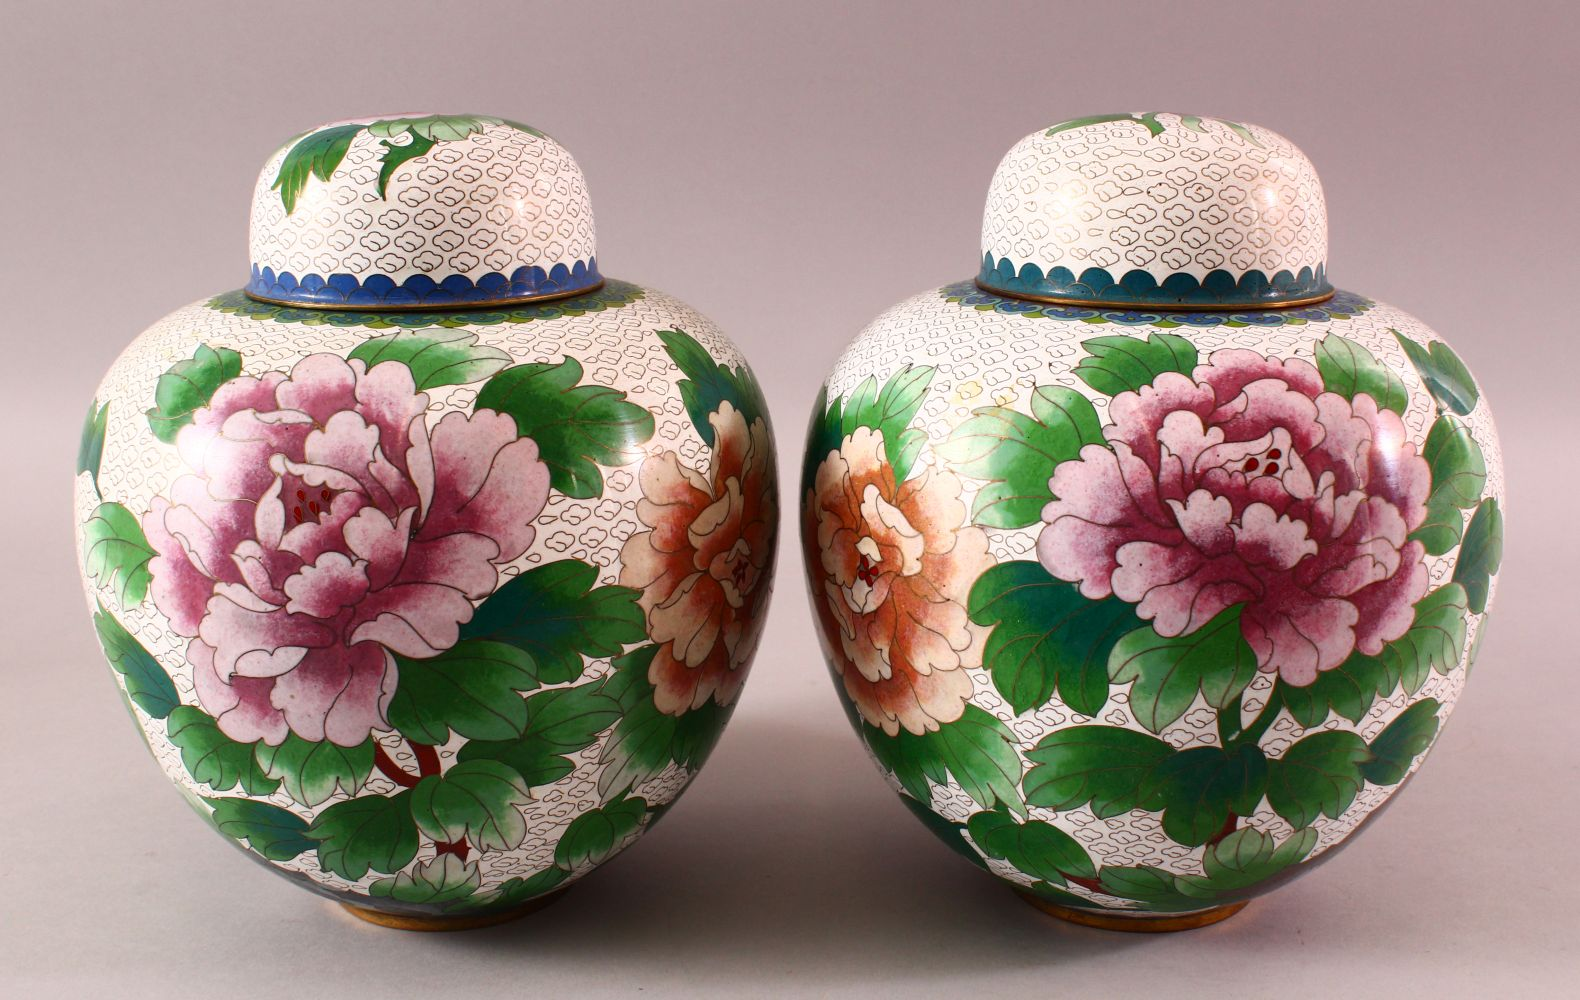 A PAIR OF CHINESE CLOISONNE GINGER JARS & COVERS, each with a white ground and floral decoration,